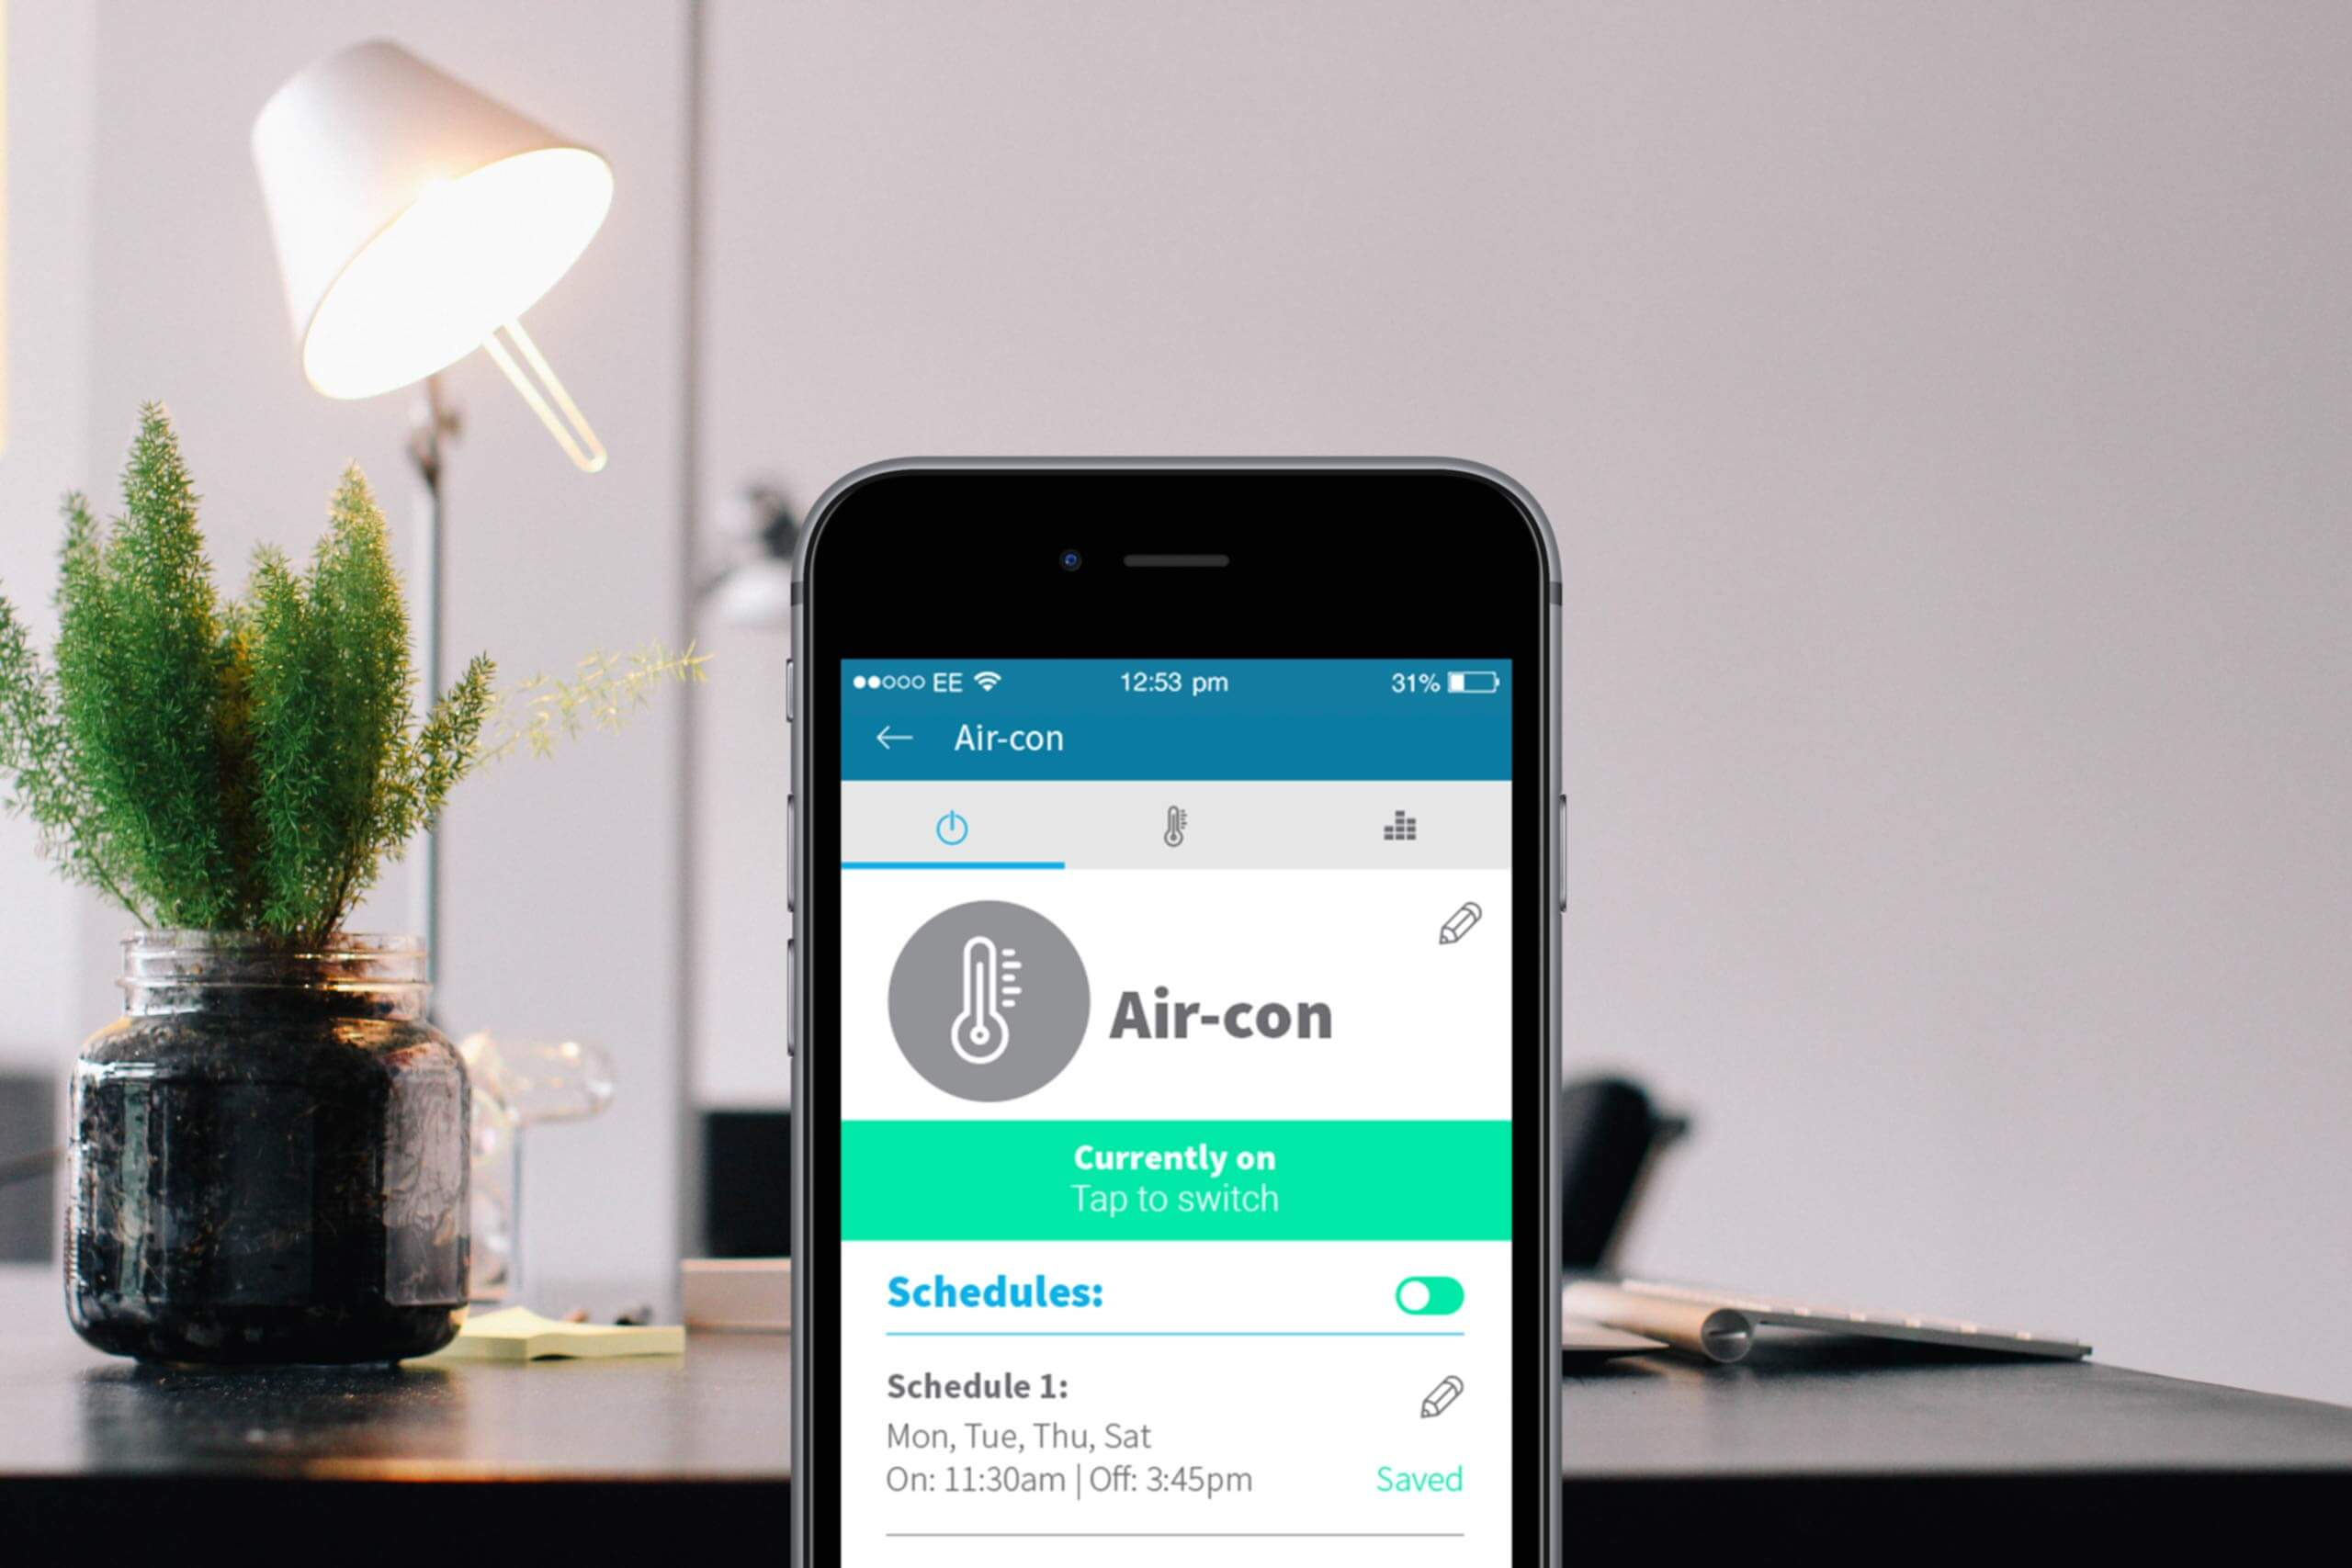 The carbonTRACK app open showing the ability to turn air conditioners on and off remotely, with the background of a bright, modern home interior.